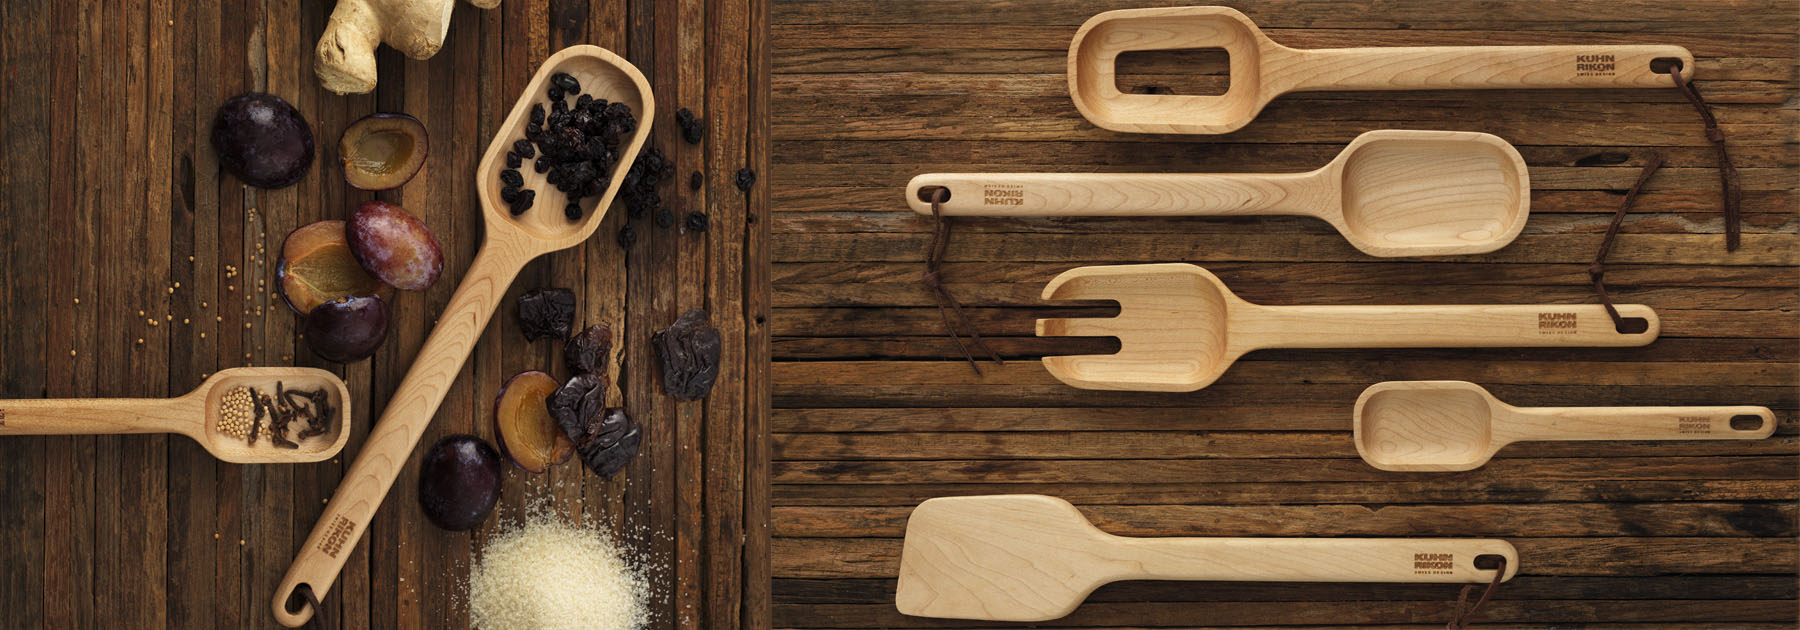 Maple Tools, Tools, Kitchen, Utensils